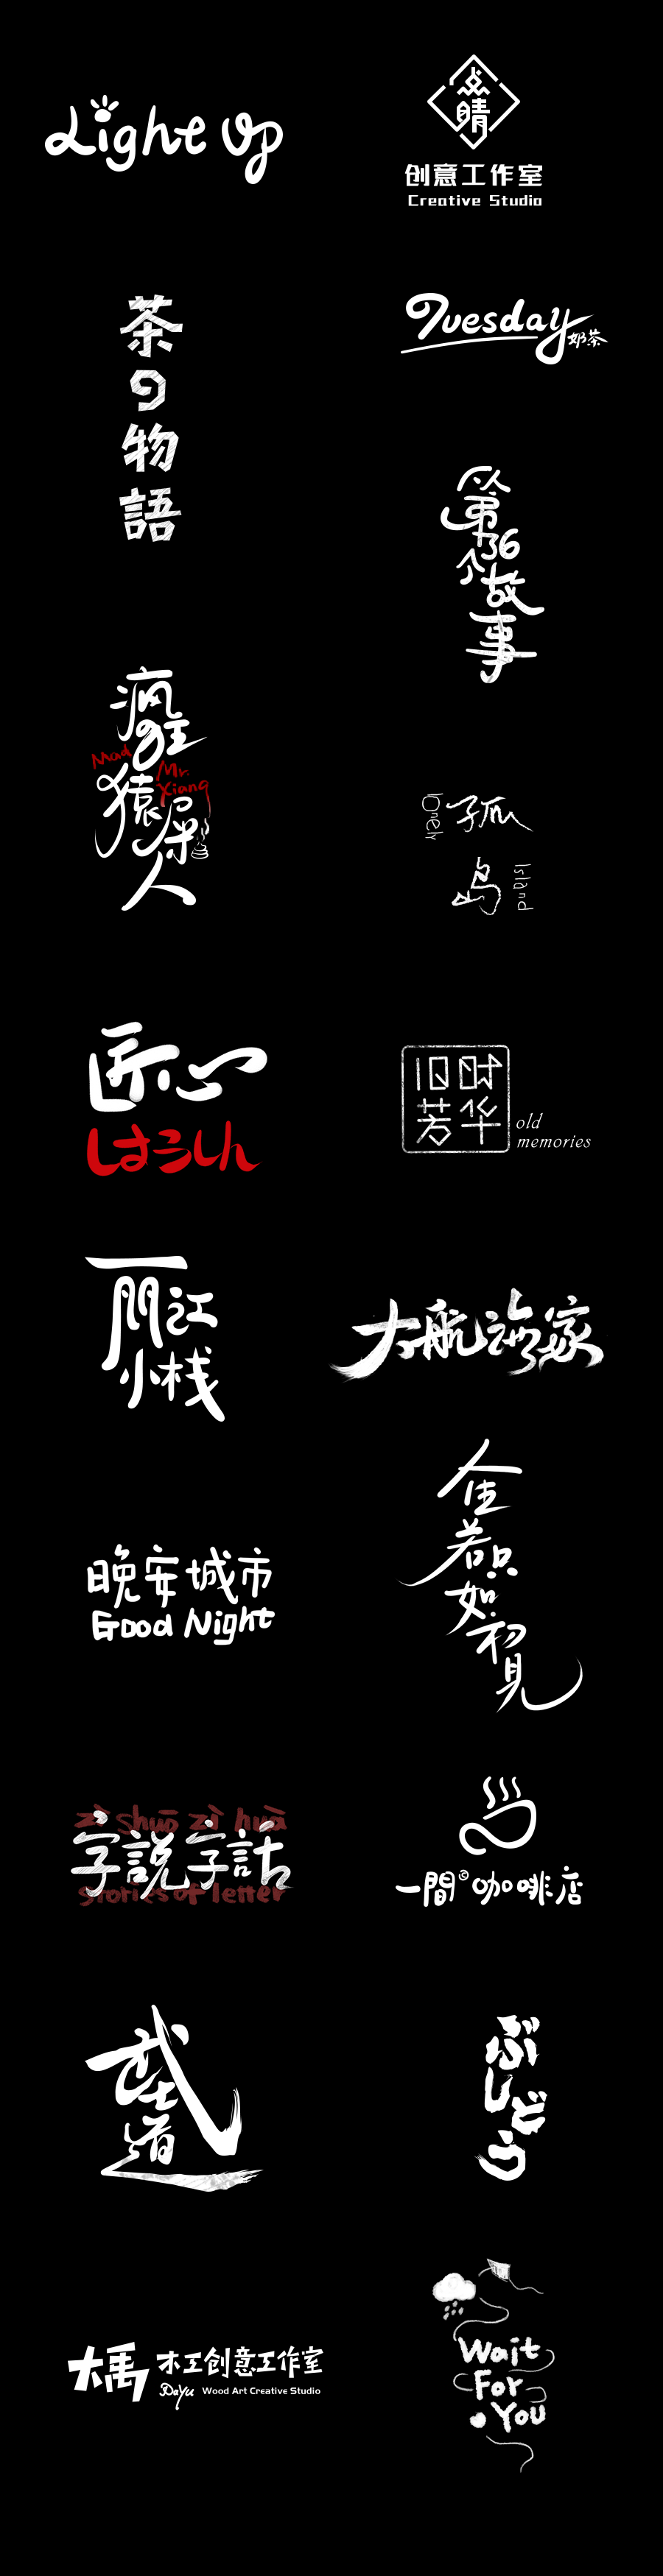 chinesefontdesign.com 2016 11 14 19 49 51 20P Please let the text spoke, Chinese typeface design